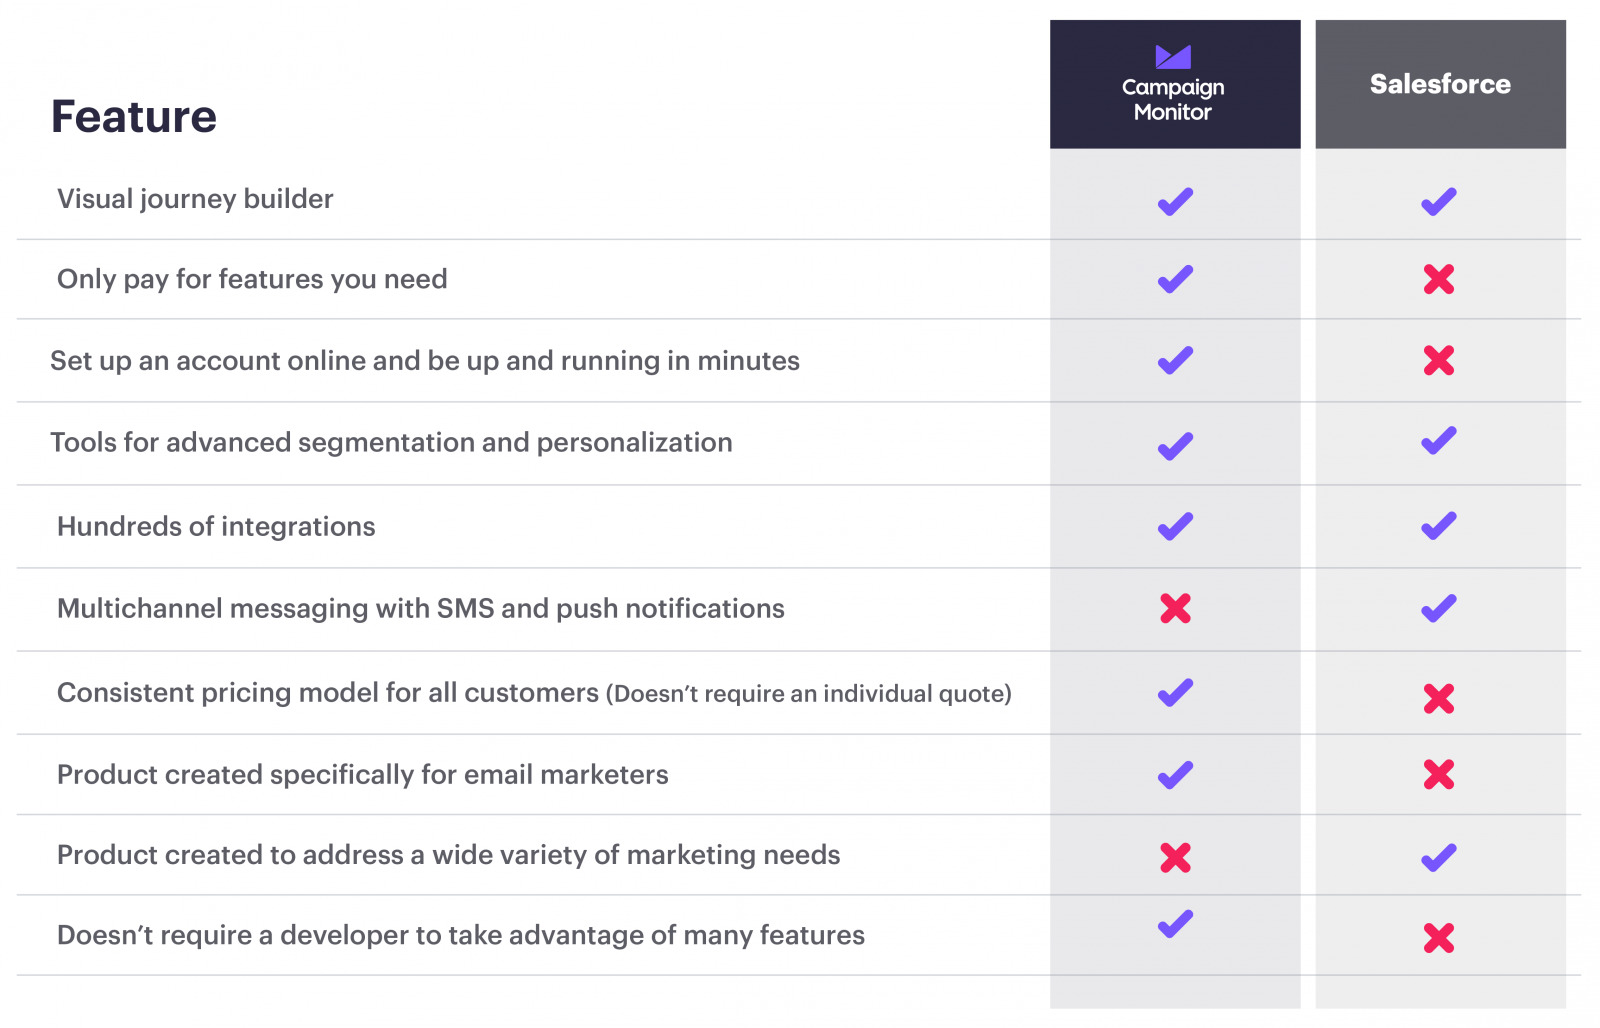 campaign monitor vs salesforce comparison table